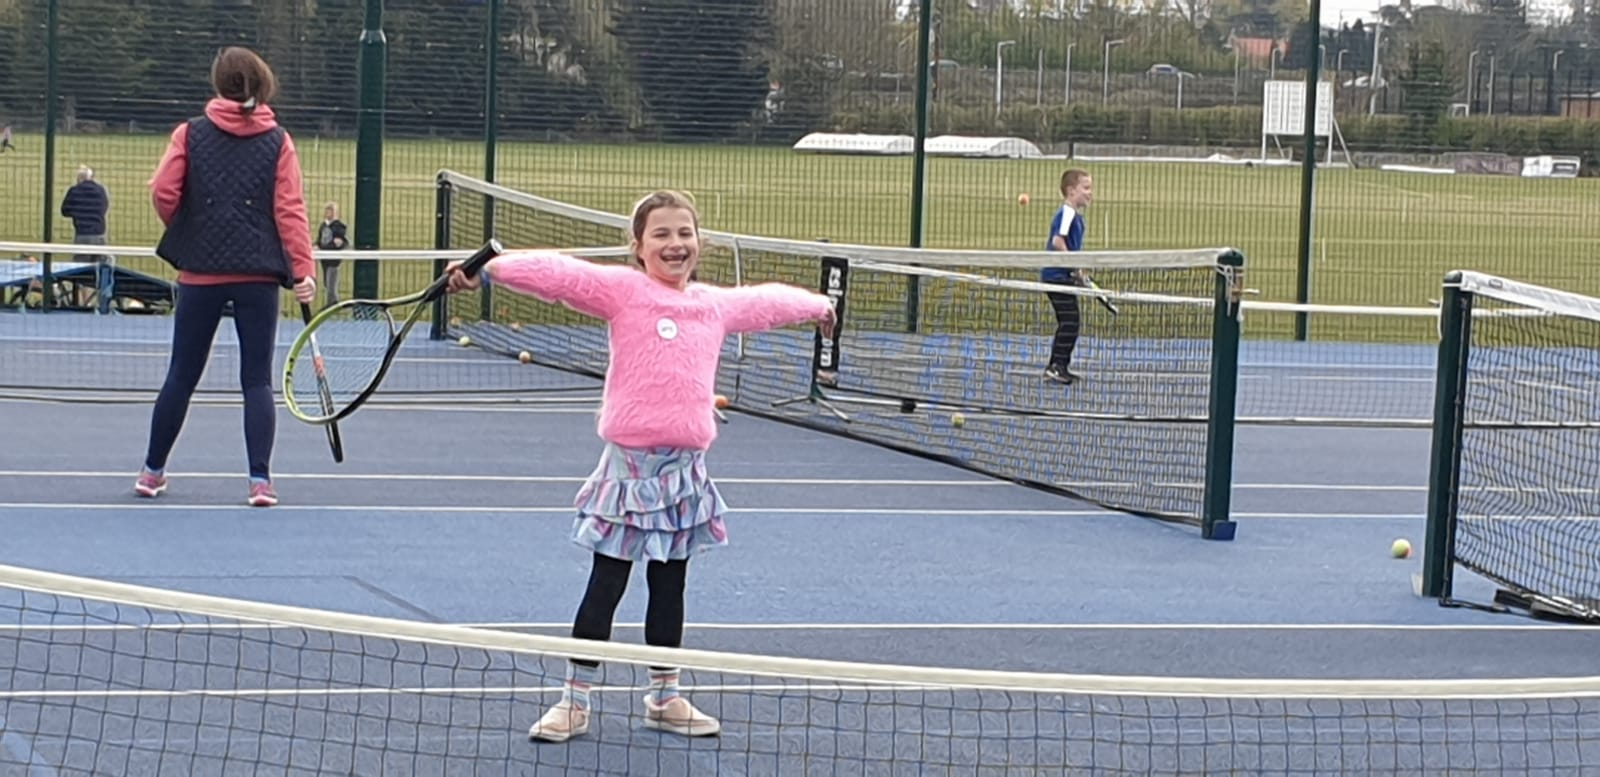 Families find out about sports in Frenchay